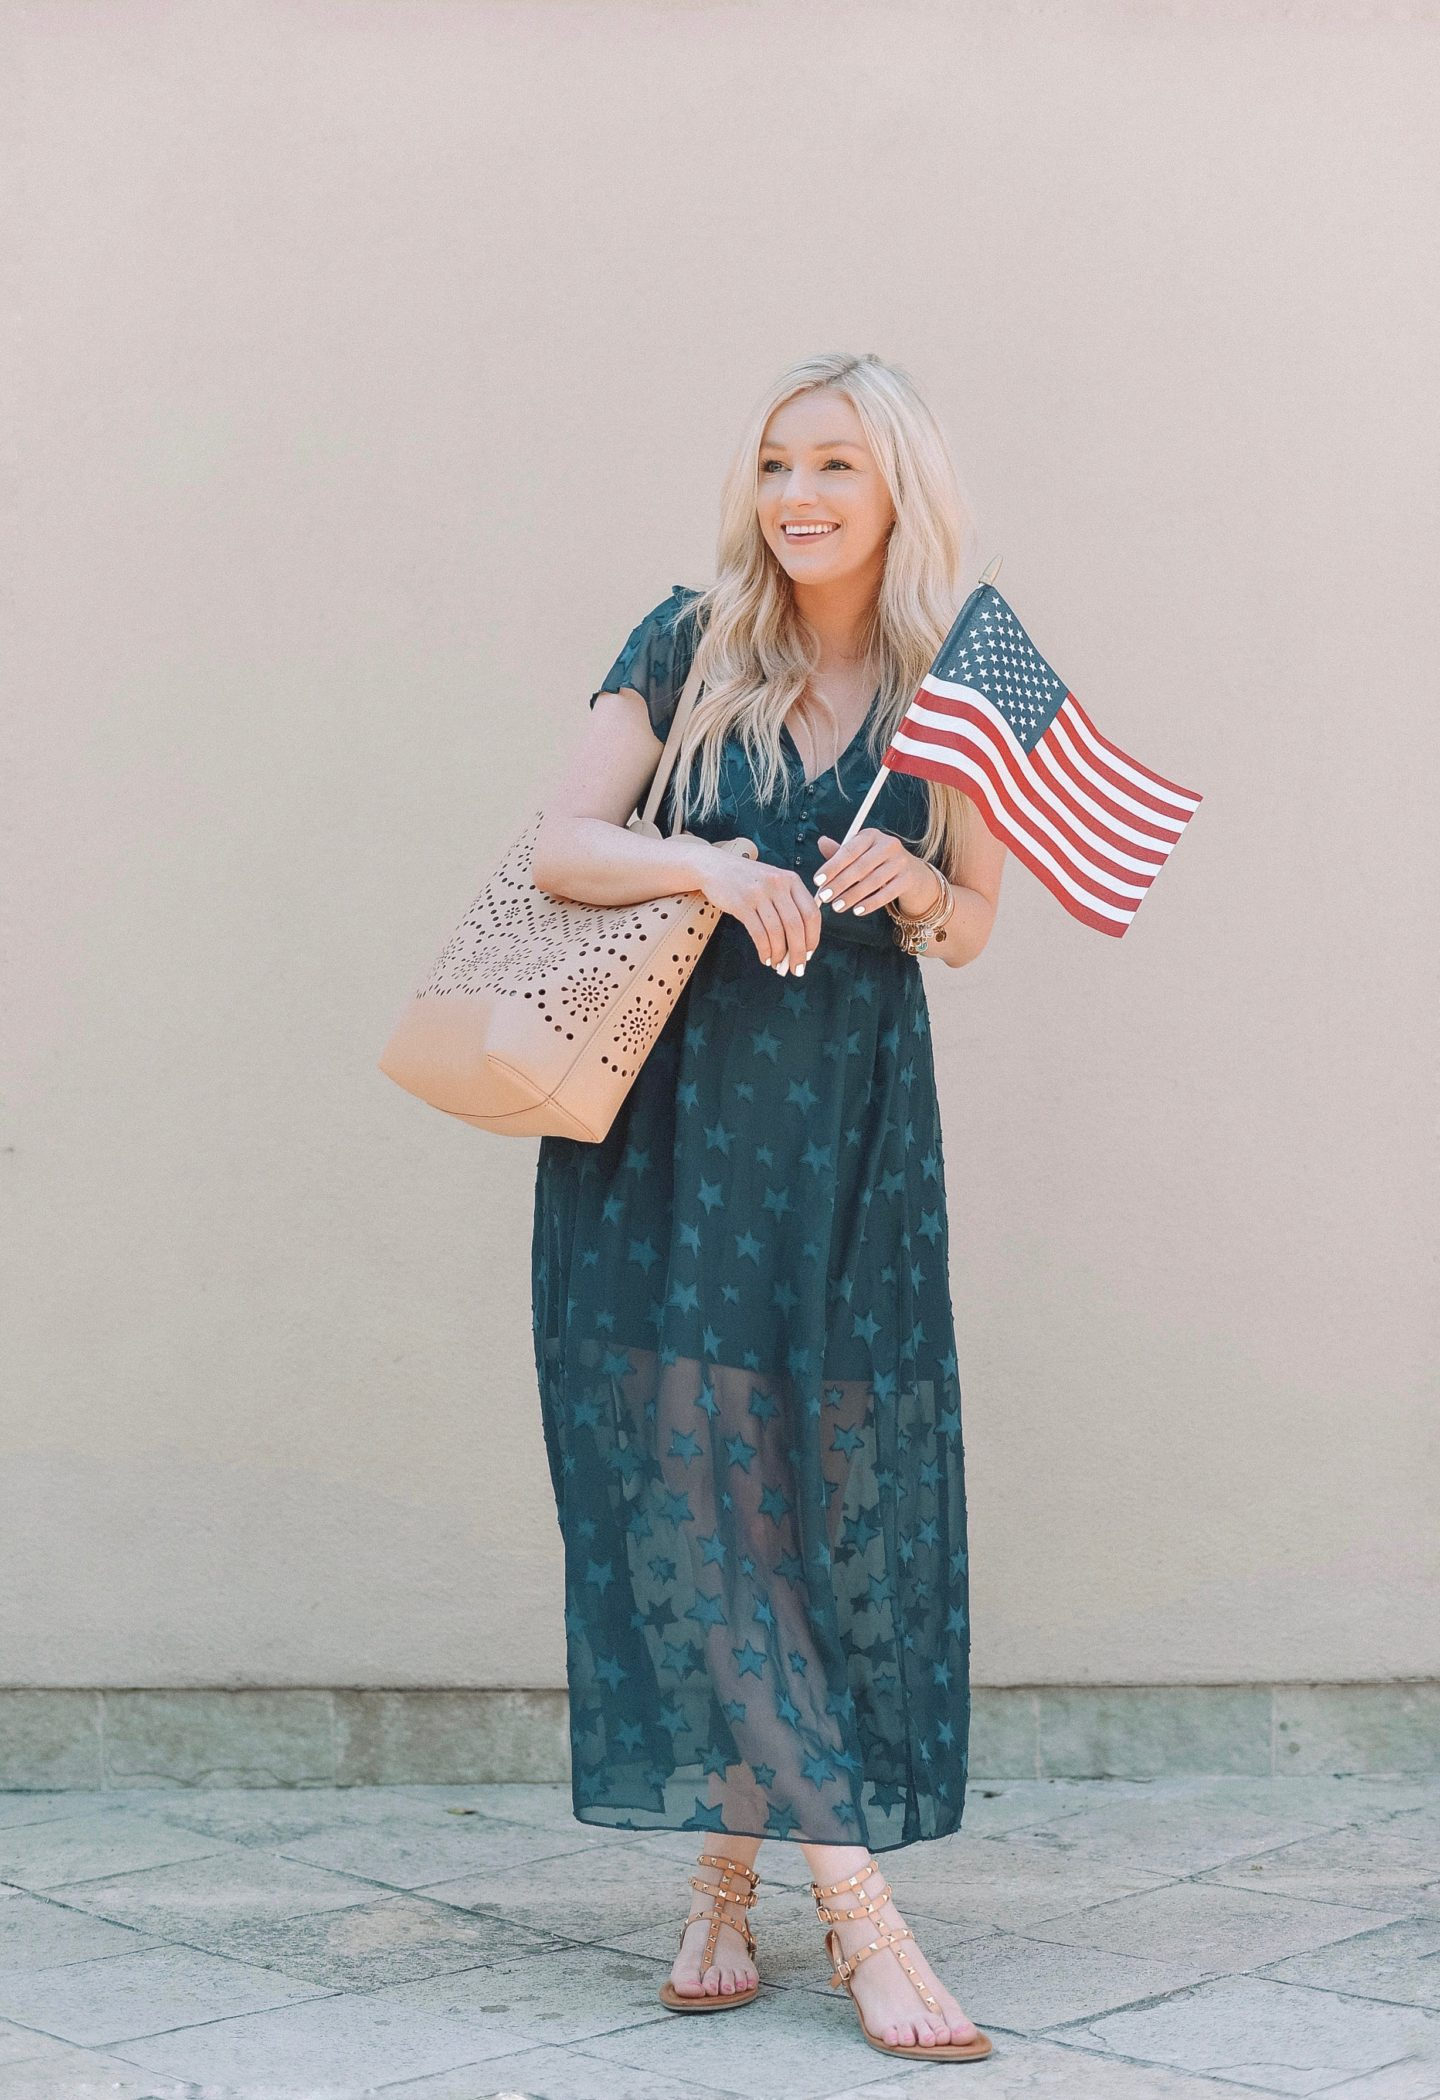 July 4th Outfit Inspo